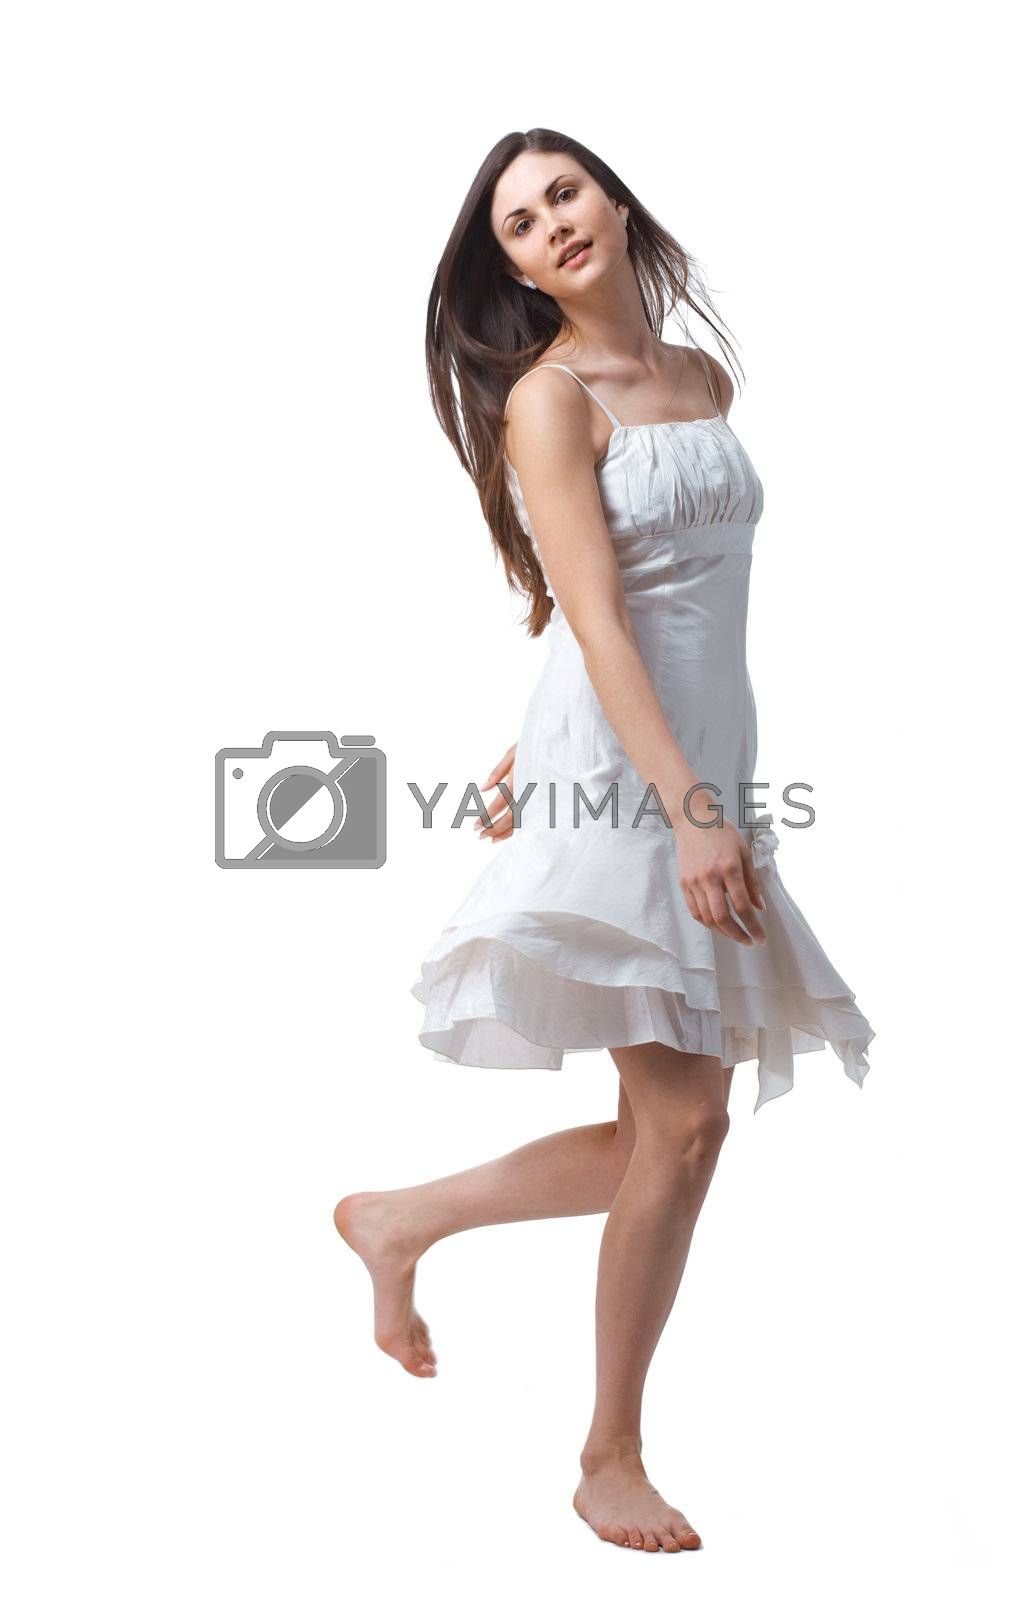 Young beautiful woman jumping on white background